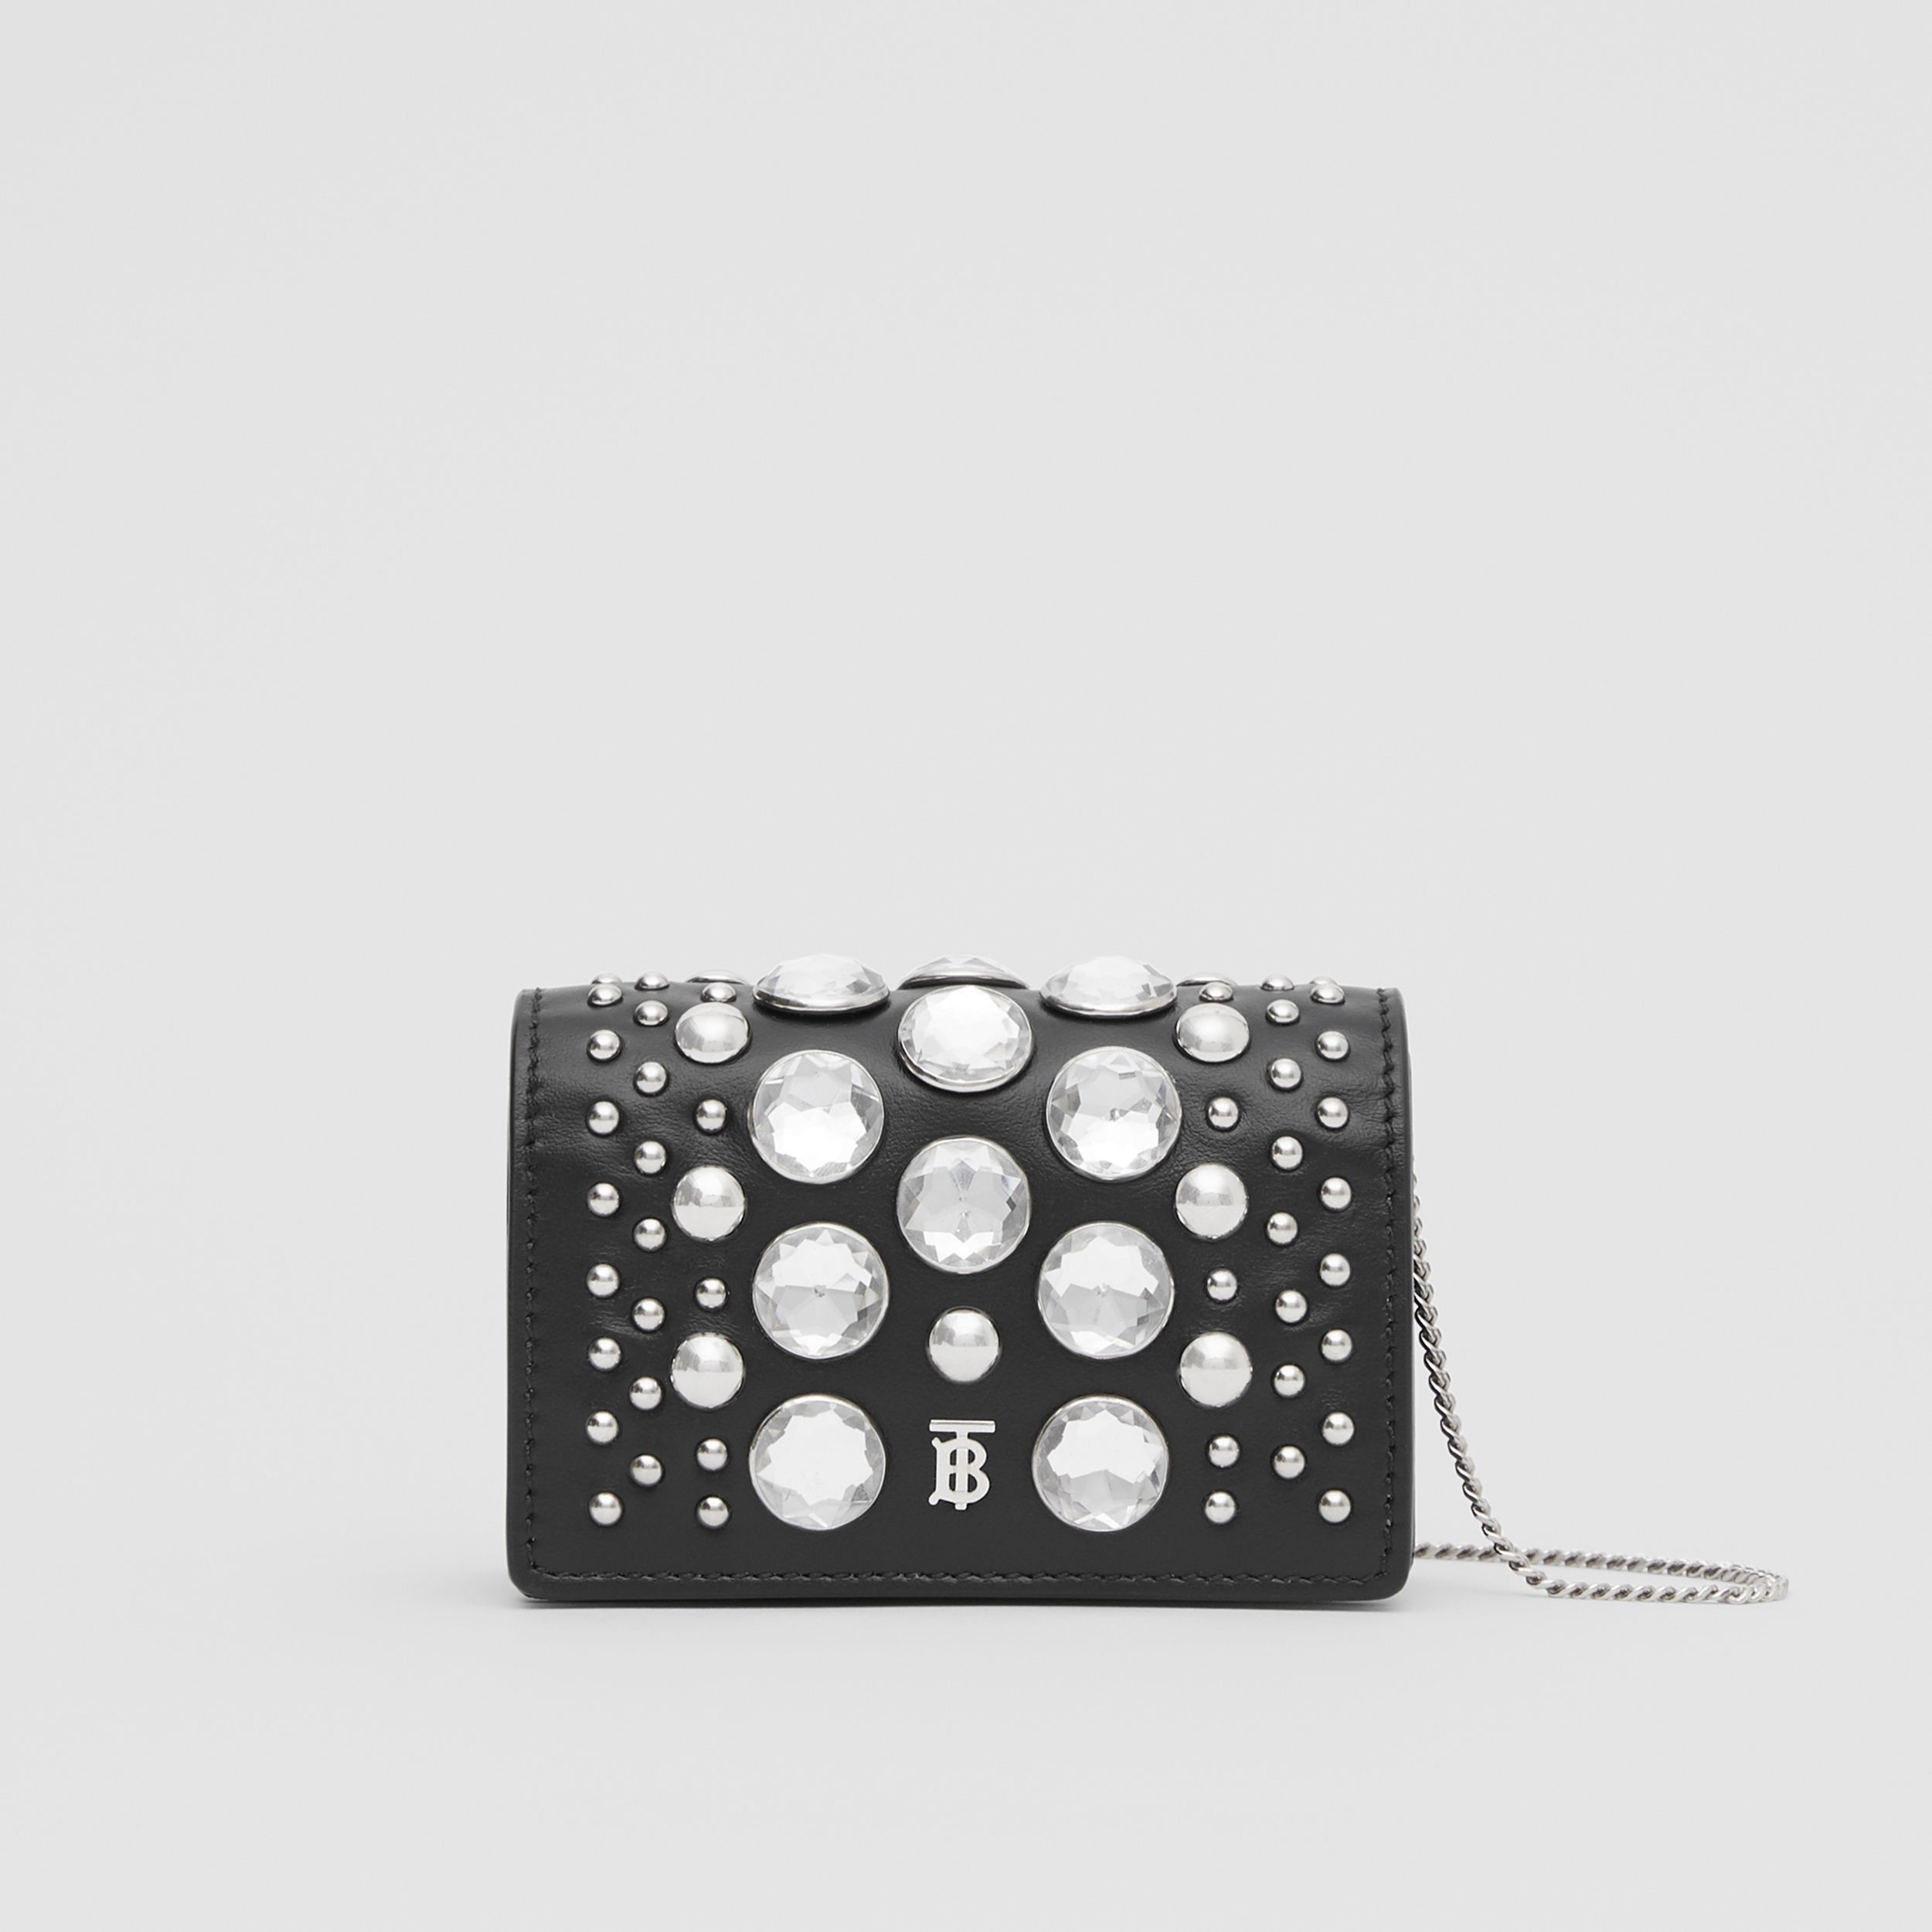 Embellished Card Case with Detachable Strap in Black | Burberry - 1